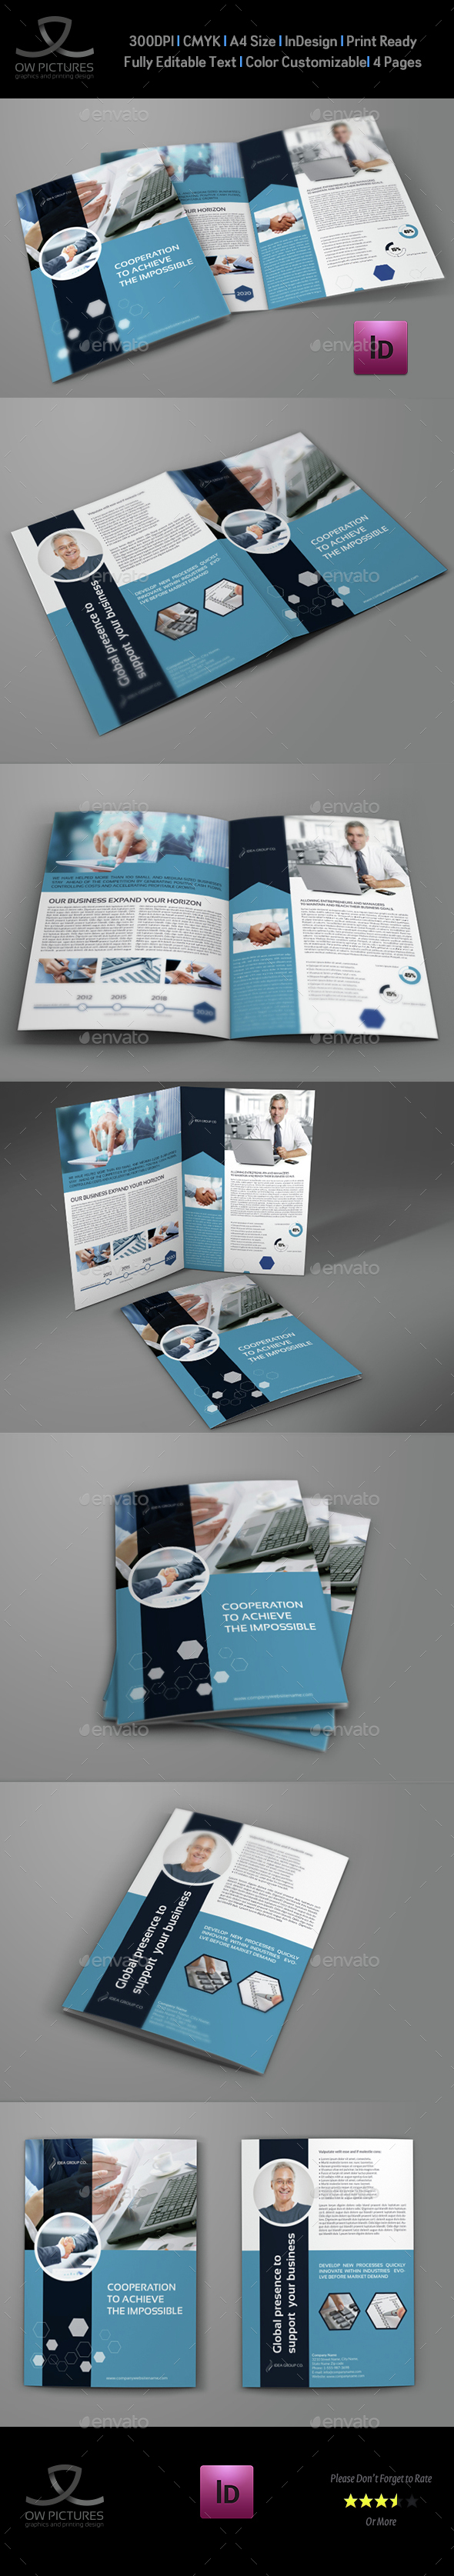 Company Profile Brochure Bi-Fold Template Vol.42 - Corporate Brochures